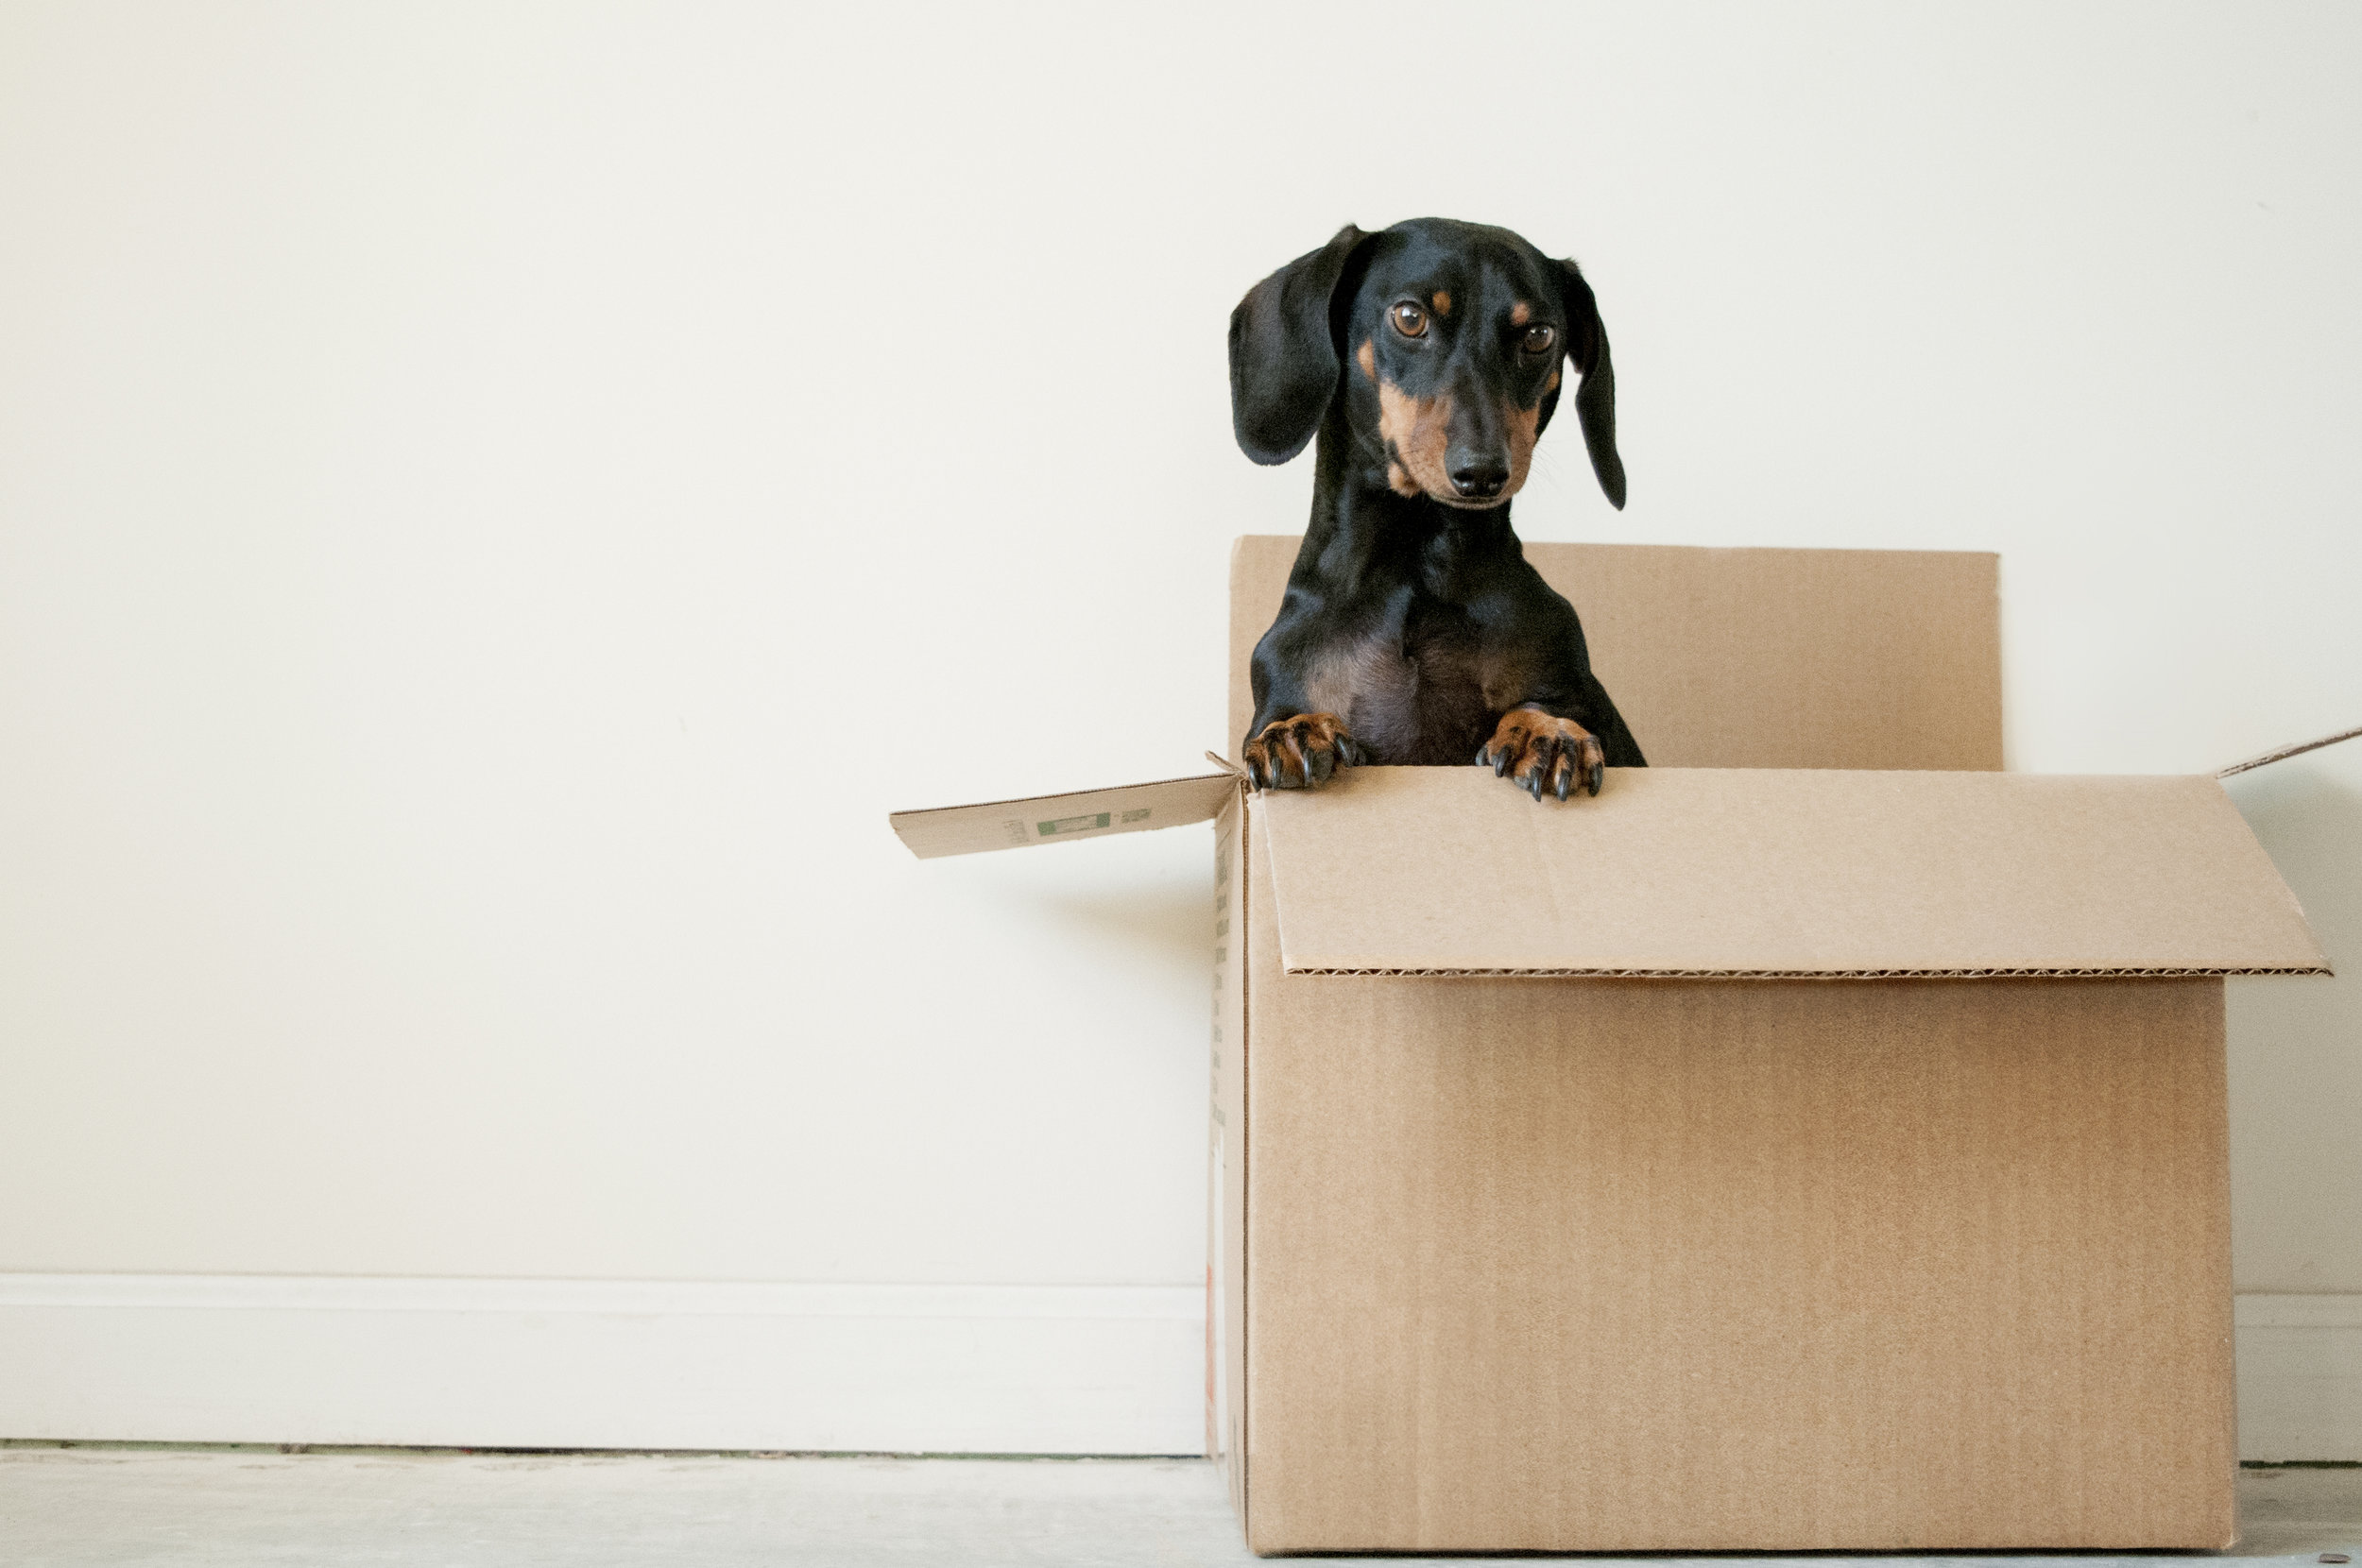 You're contemplating a change - Are you moving? Downsizing? The prospect of having to go through all of your collected home treasures and deciding what to keep or discard is a daunting and almost always emotionally draining process. So is unpacking and organizing your furniture and belongings in your new or modified living space. Let me help you maximize function but in an aesthetically pleasing way. Learn how to surround yourself with the things you truly love and surrender the rest!